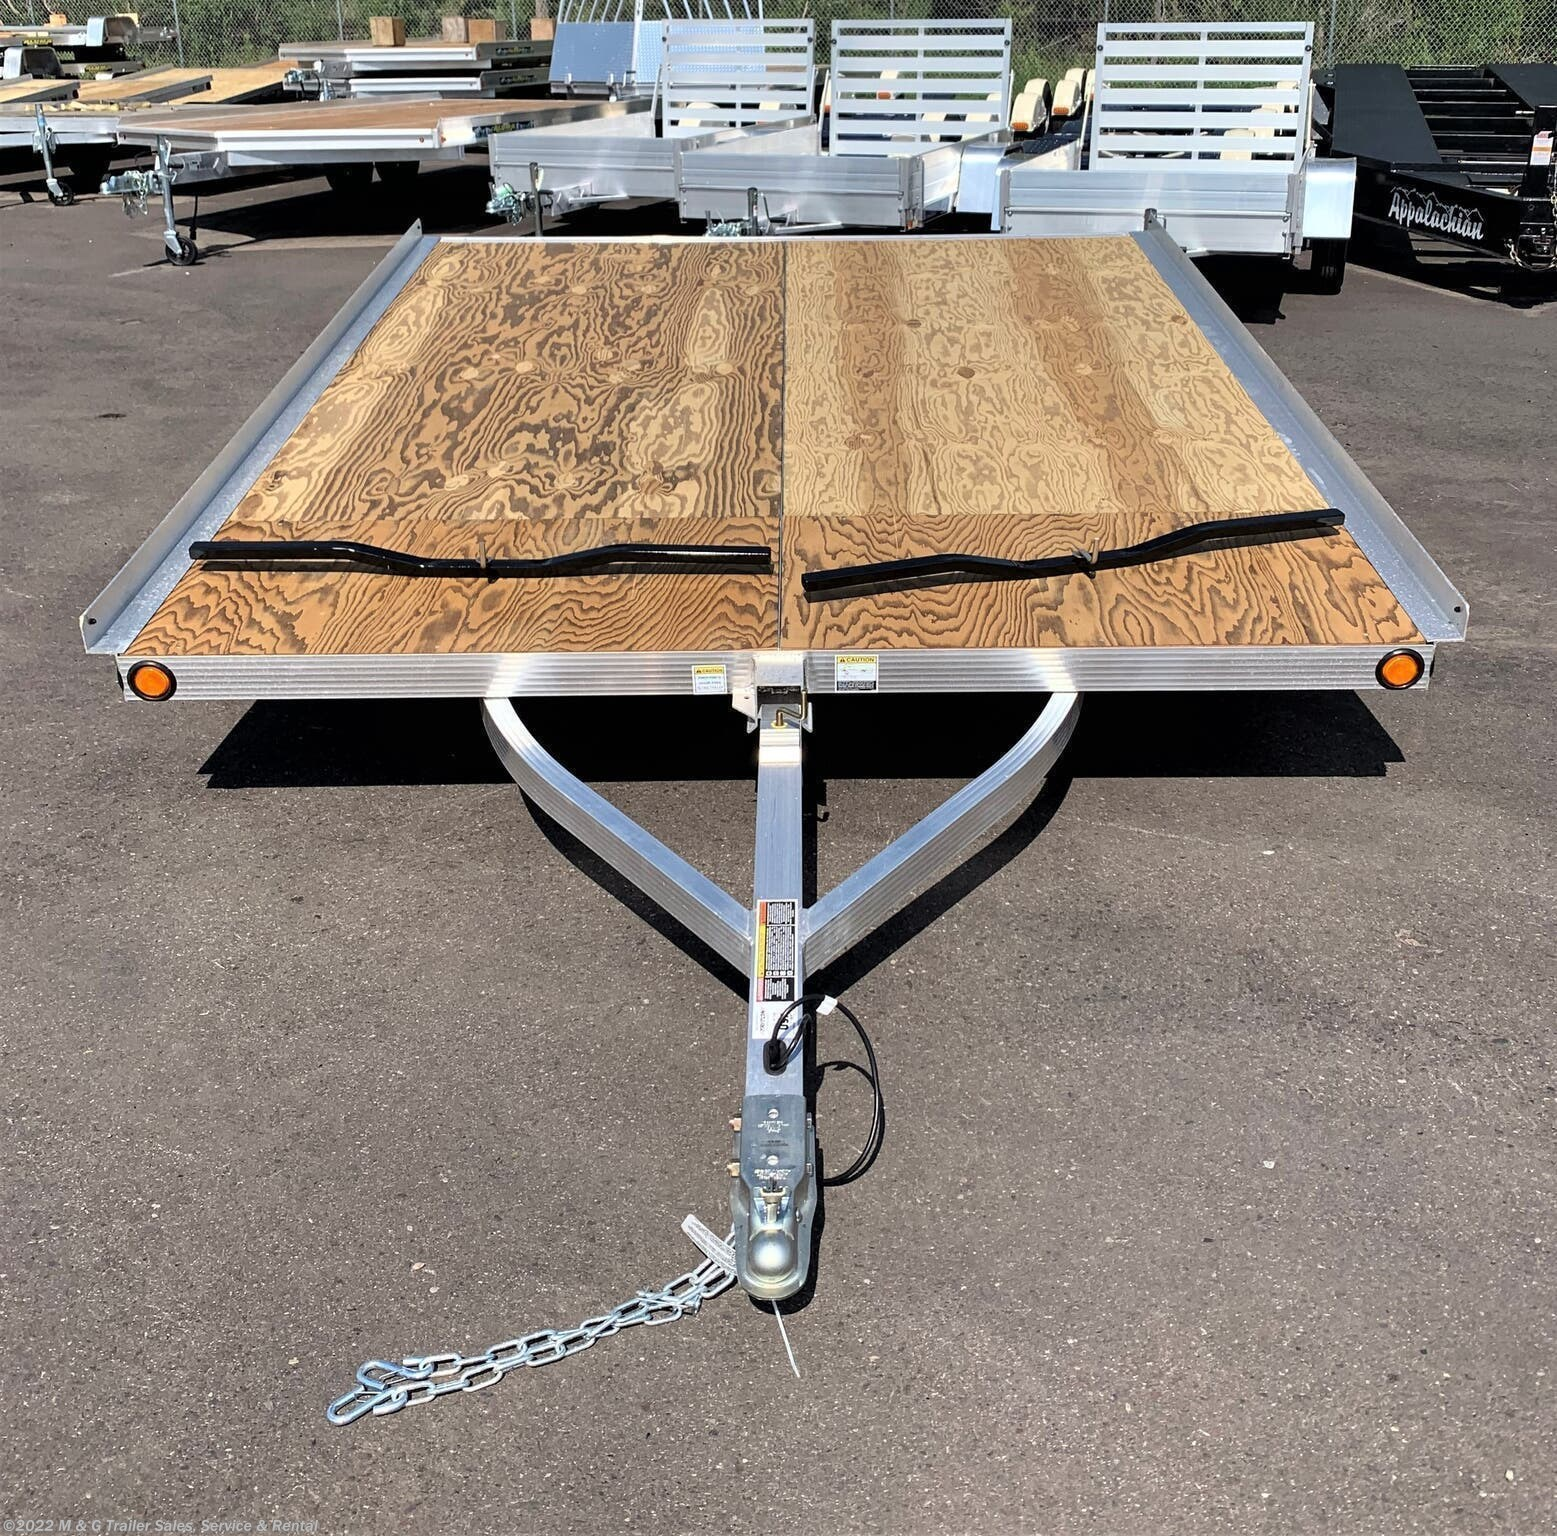 2021 Triton Trailers XT10-101 Tilt 2 Place Snowmobile Trailer - Stock #x56706